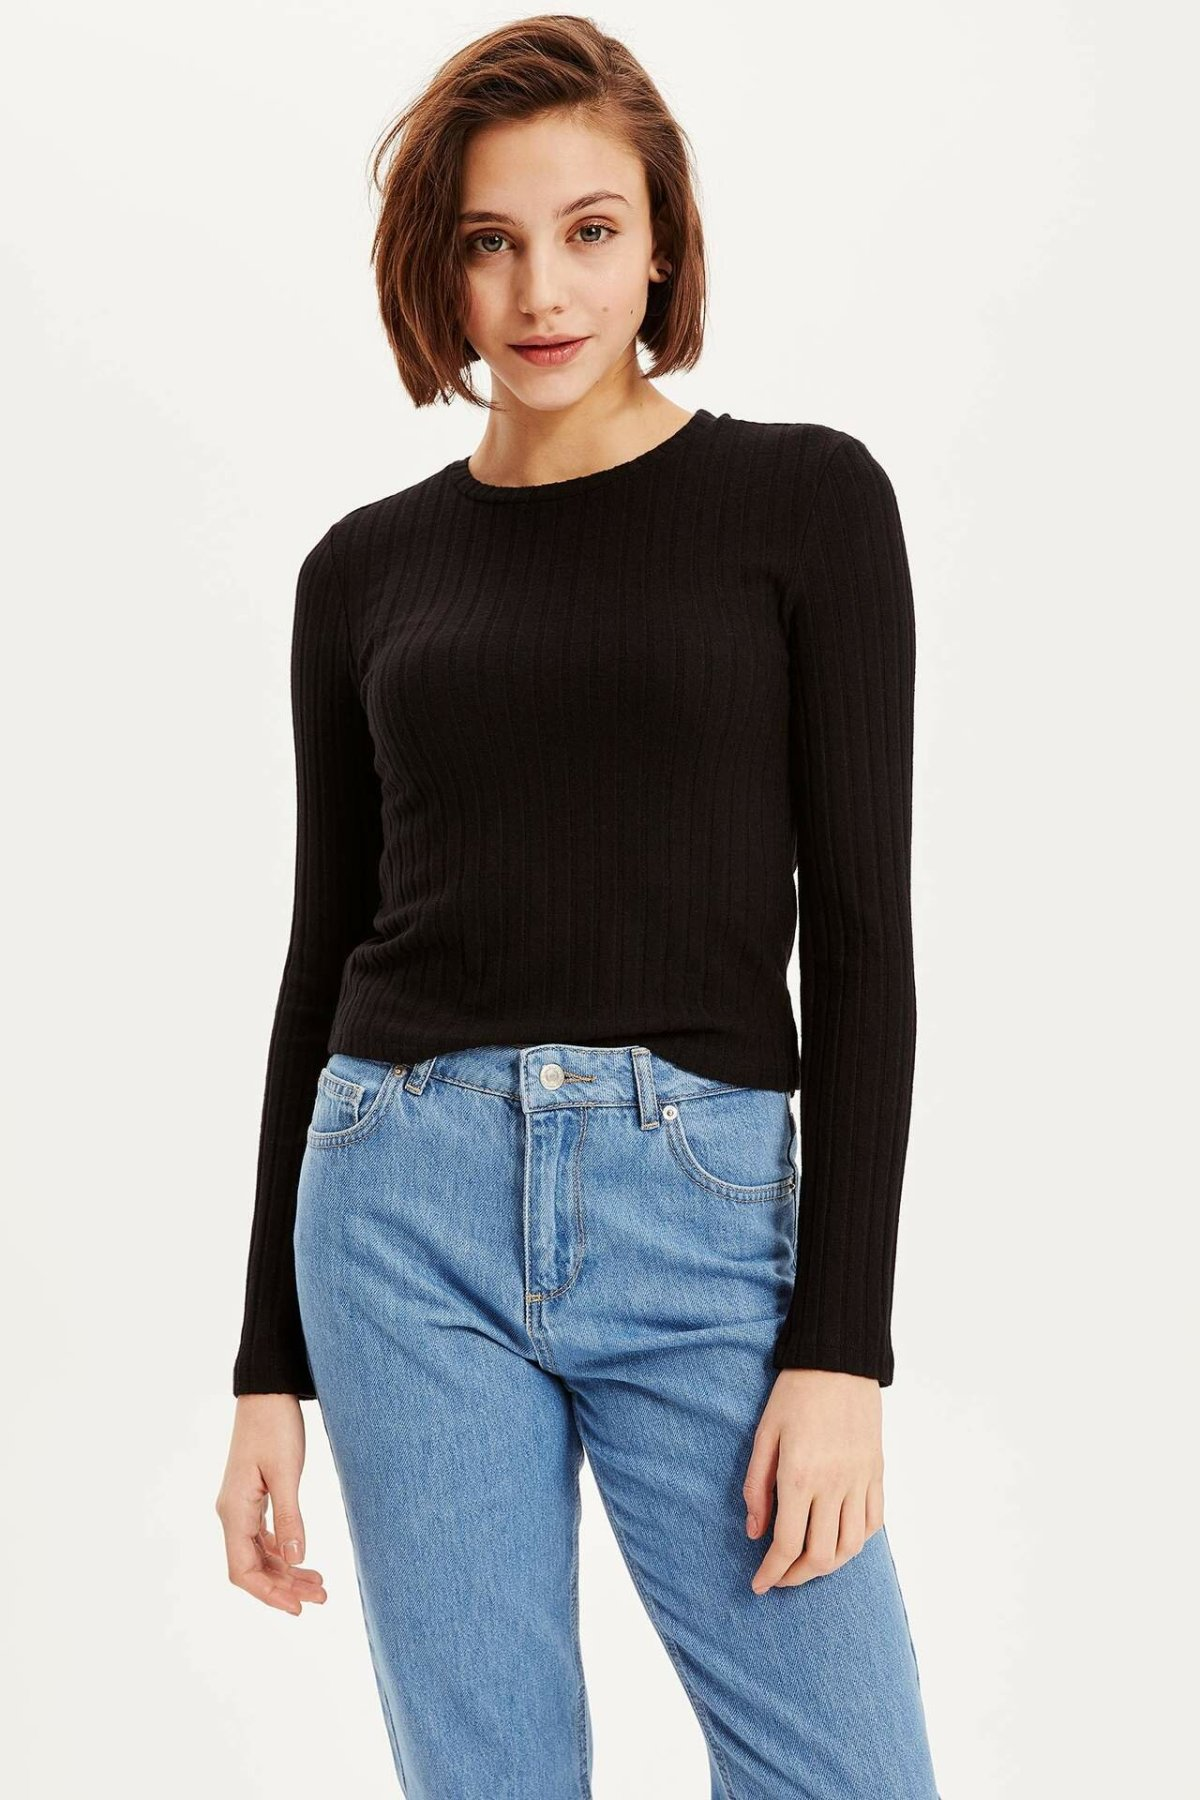 DeFacto New Women Black Fashion O-neck Casual Solid Sweater Slim Female Simple Knitted Sweaters Lady Autumn - K7937AZ18CW